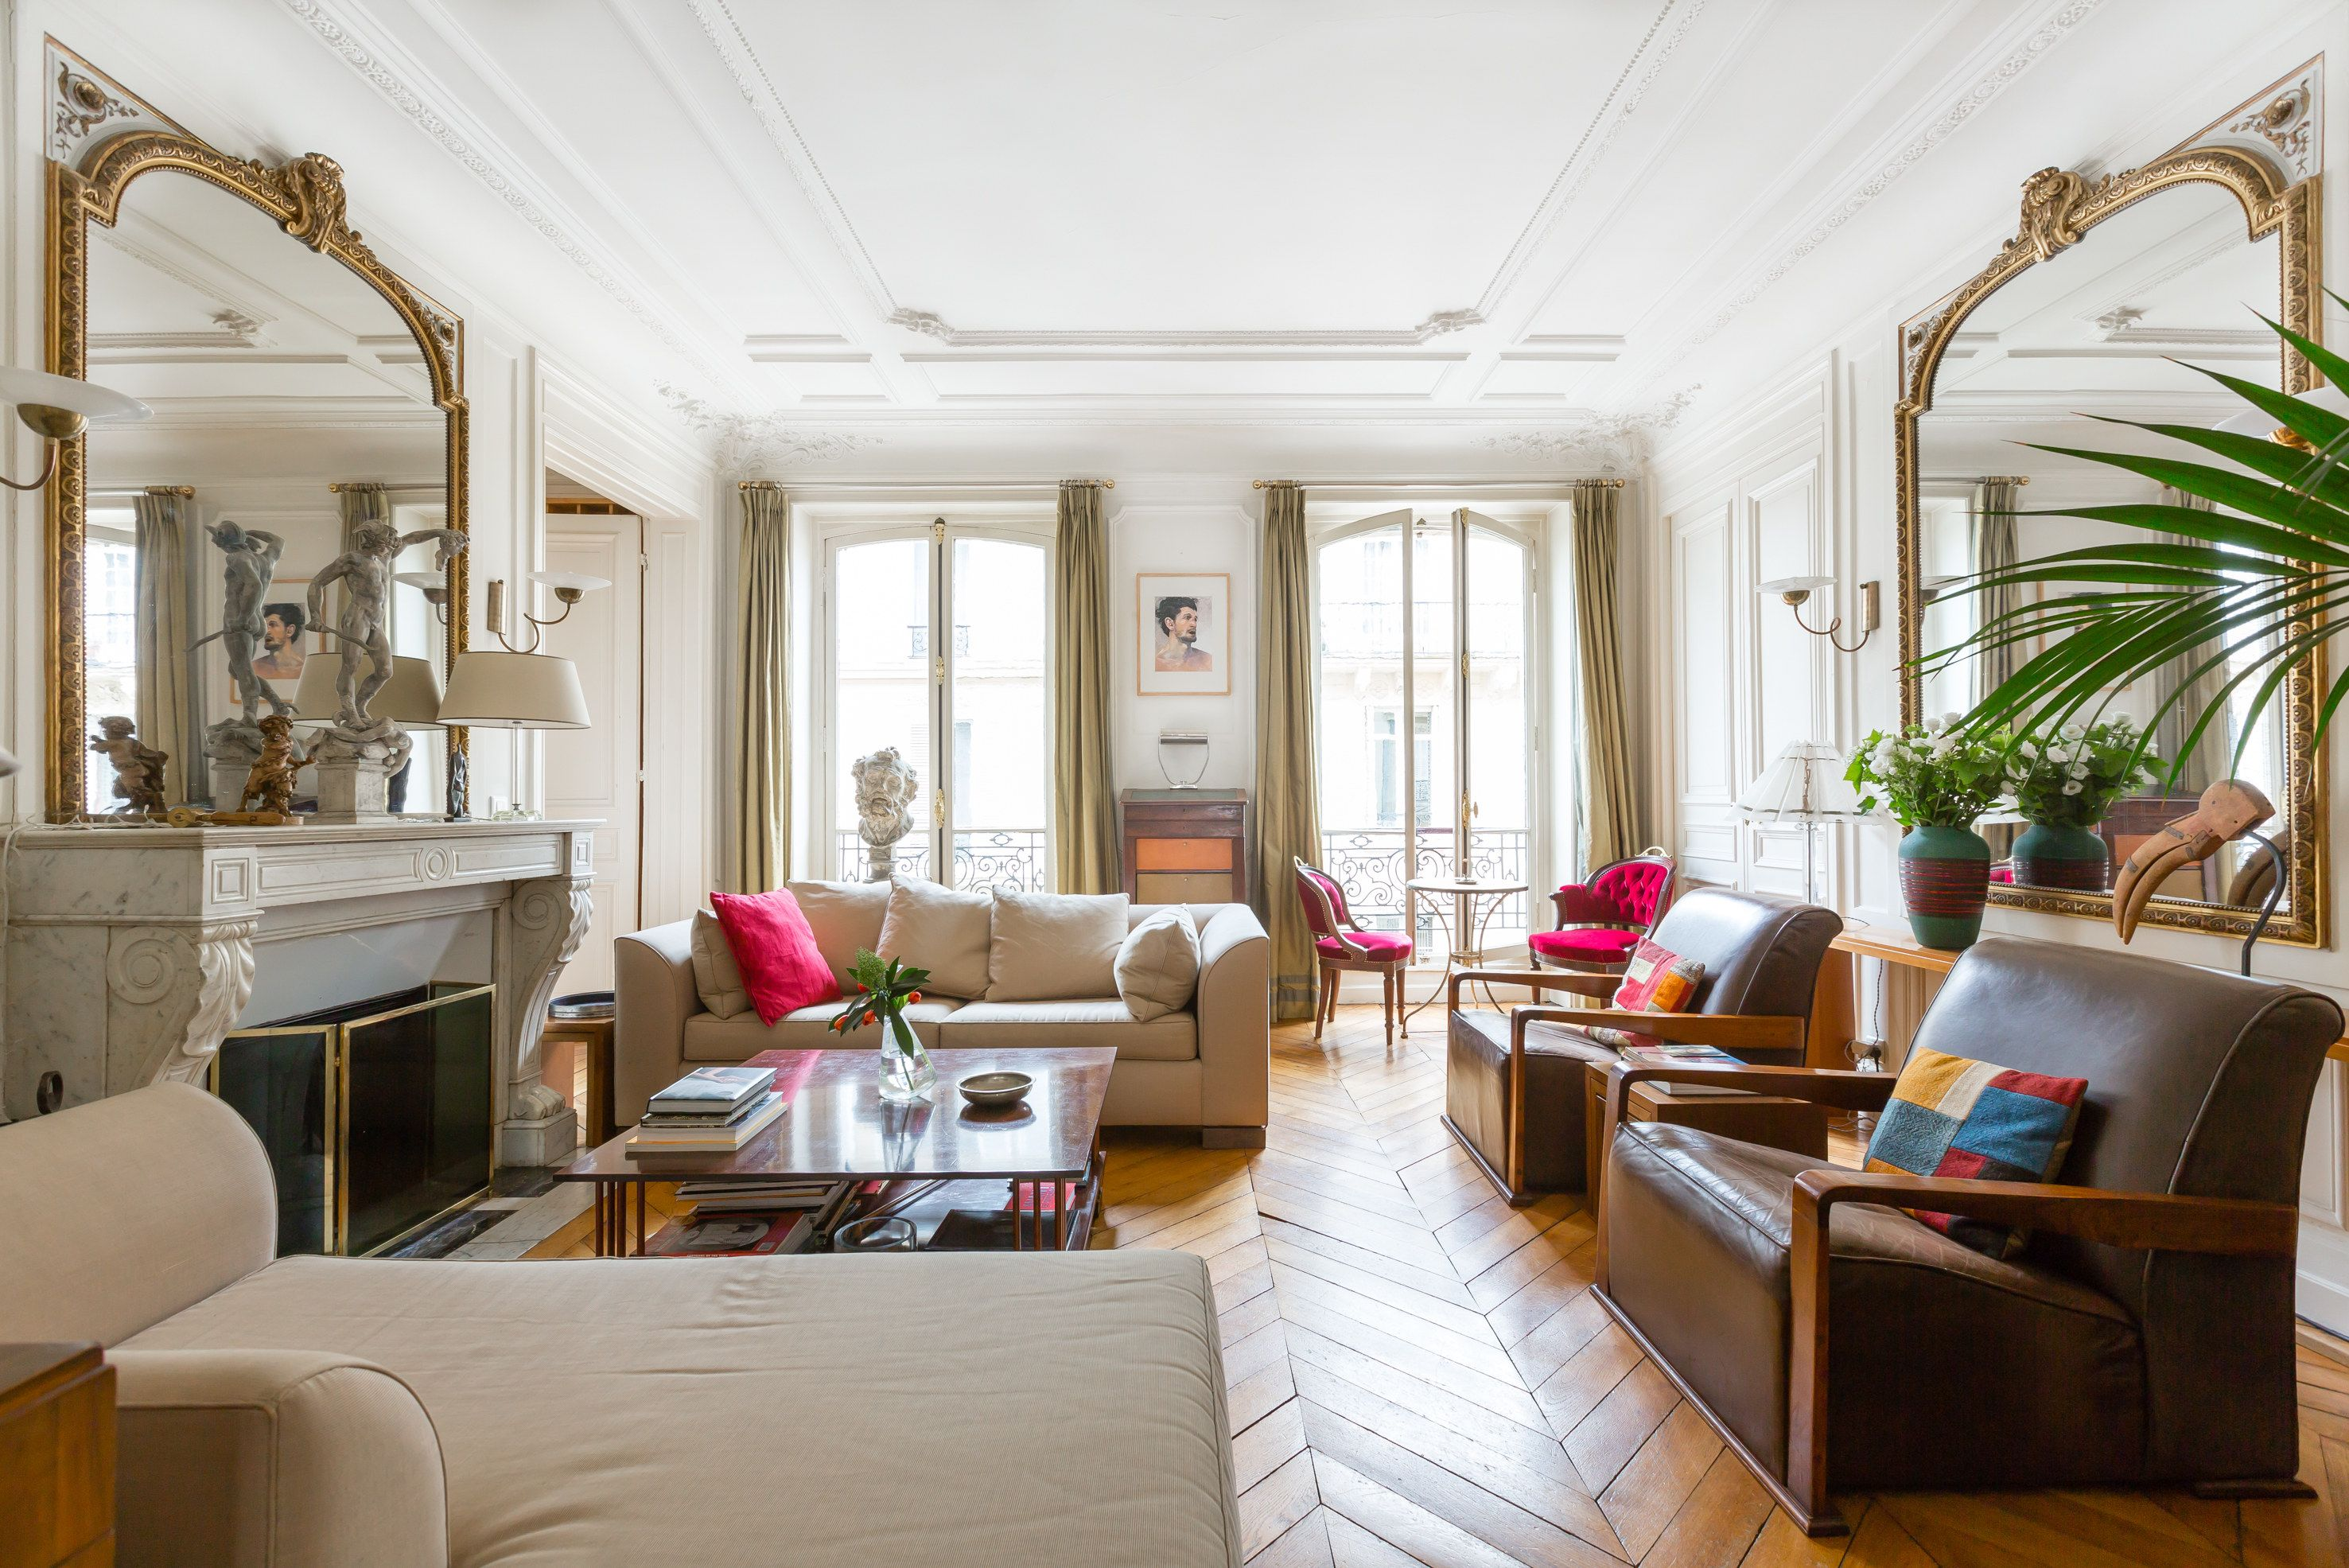 Luxurious Vacation Home Rentals In Cities Around The World From Onefinestay  Photos | Architectural Digest